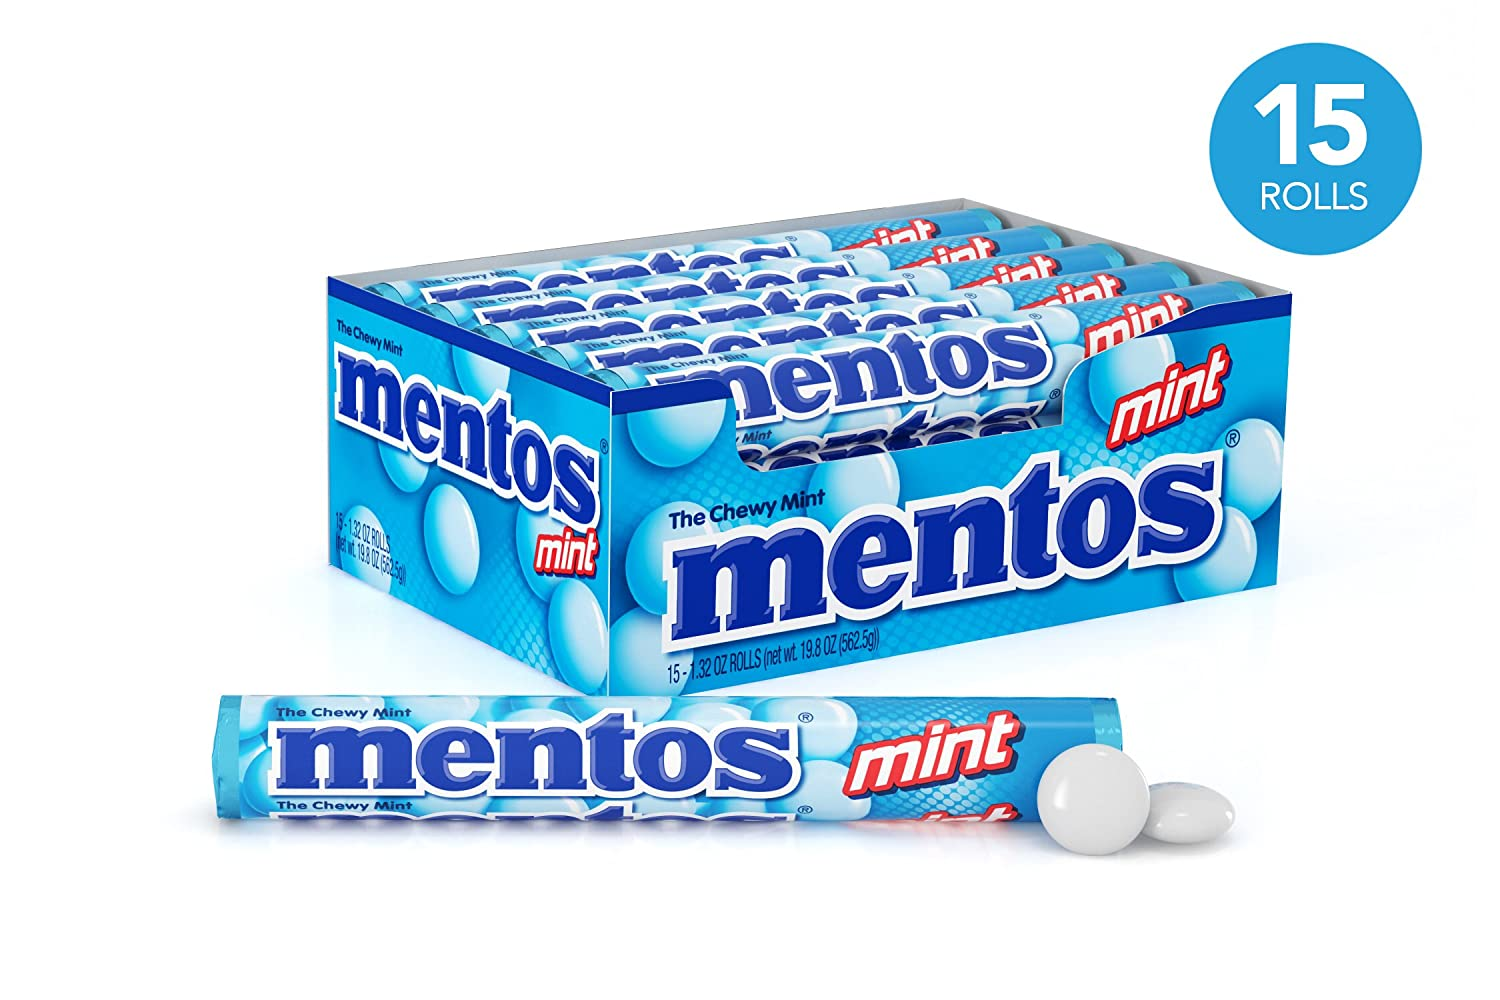 Mentos Chewy Mint Candy Roll, Mint, Party, Non Melting, 1 32 Ounce/14  Pieces (Pack of 15) - Packaging